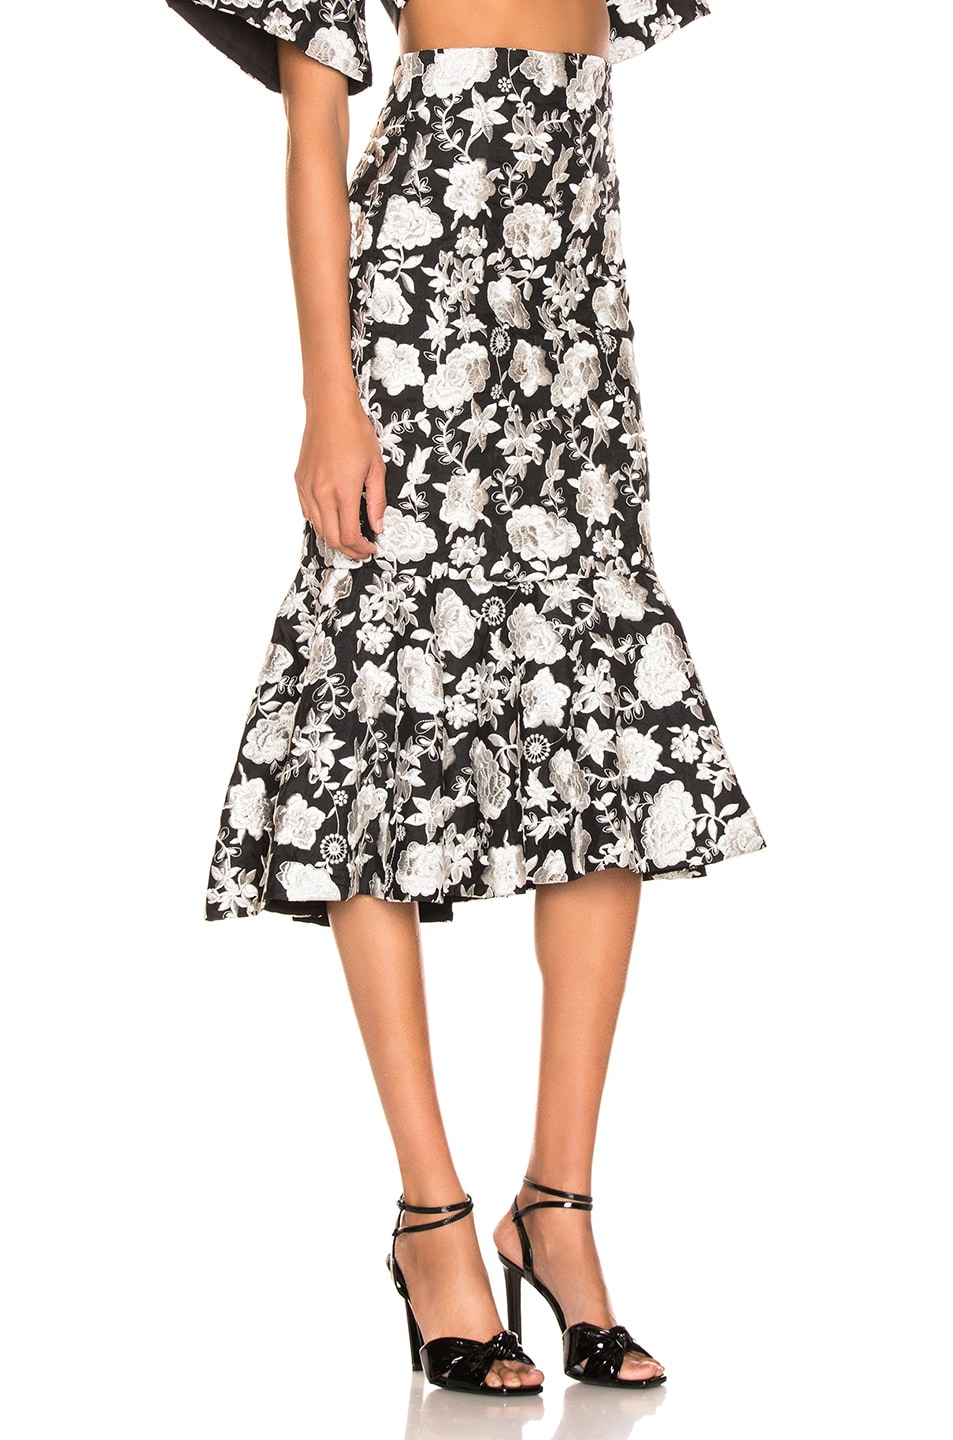 Image 2 of Alexis Reece Skirt in Ivory Floral Embroidery